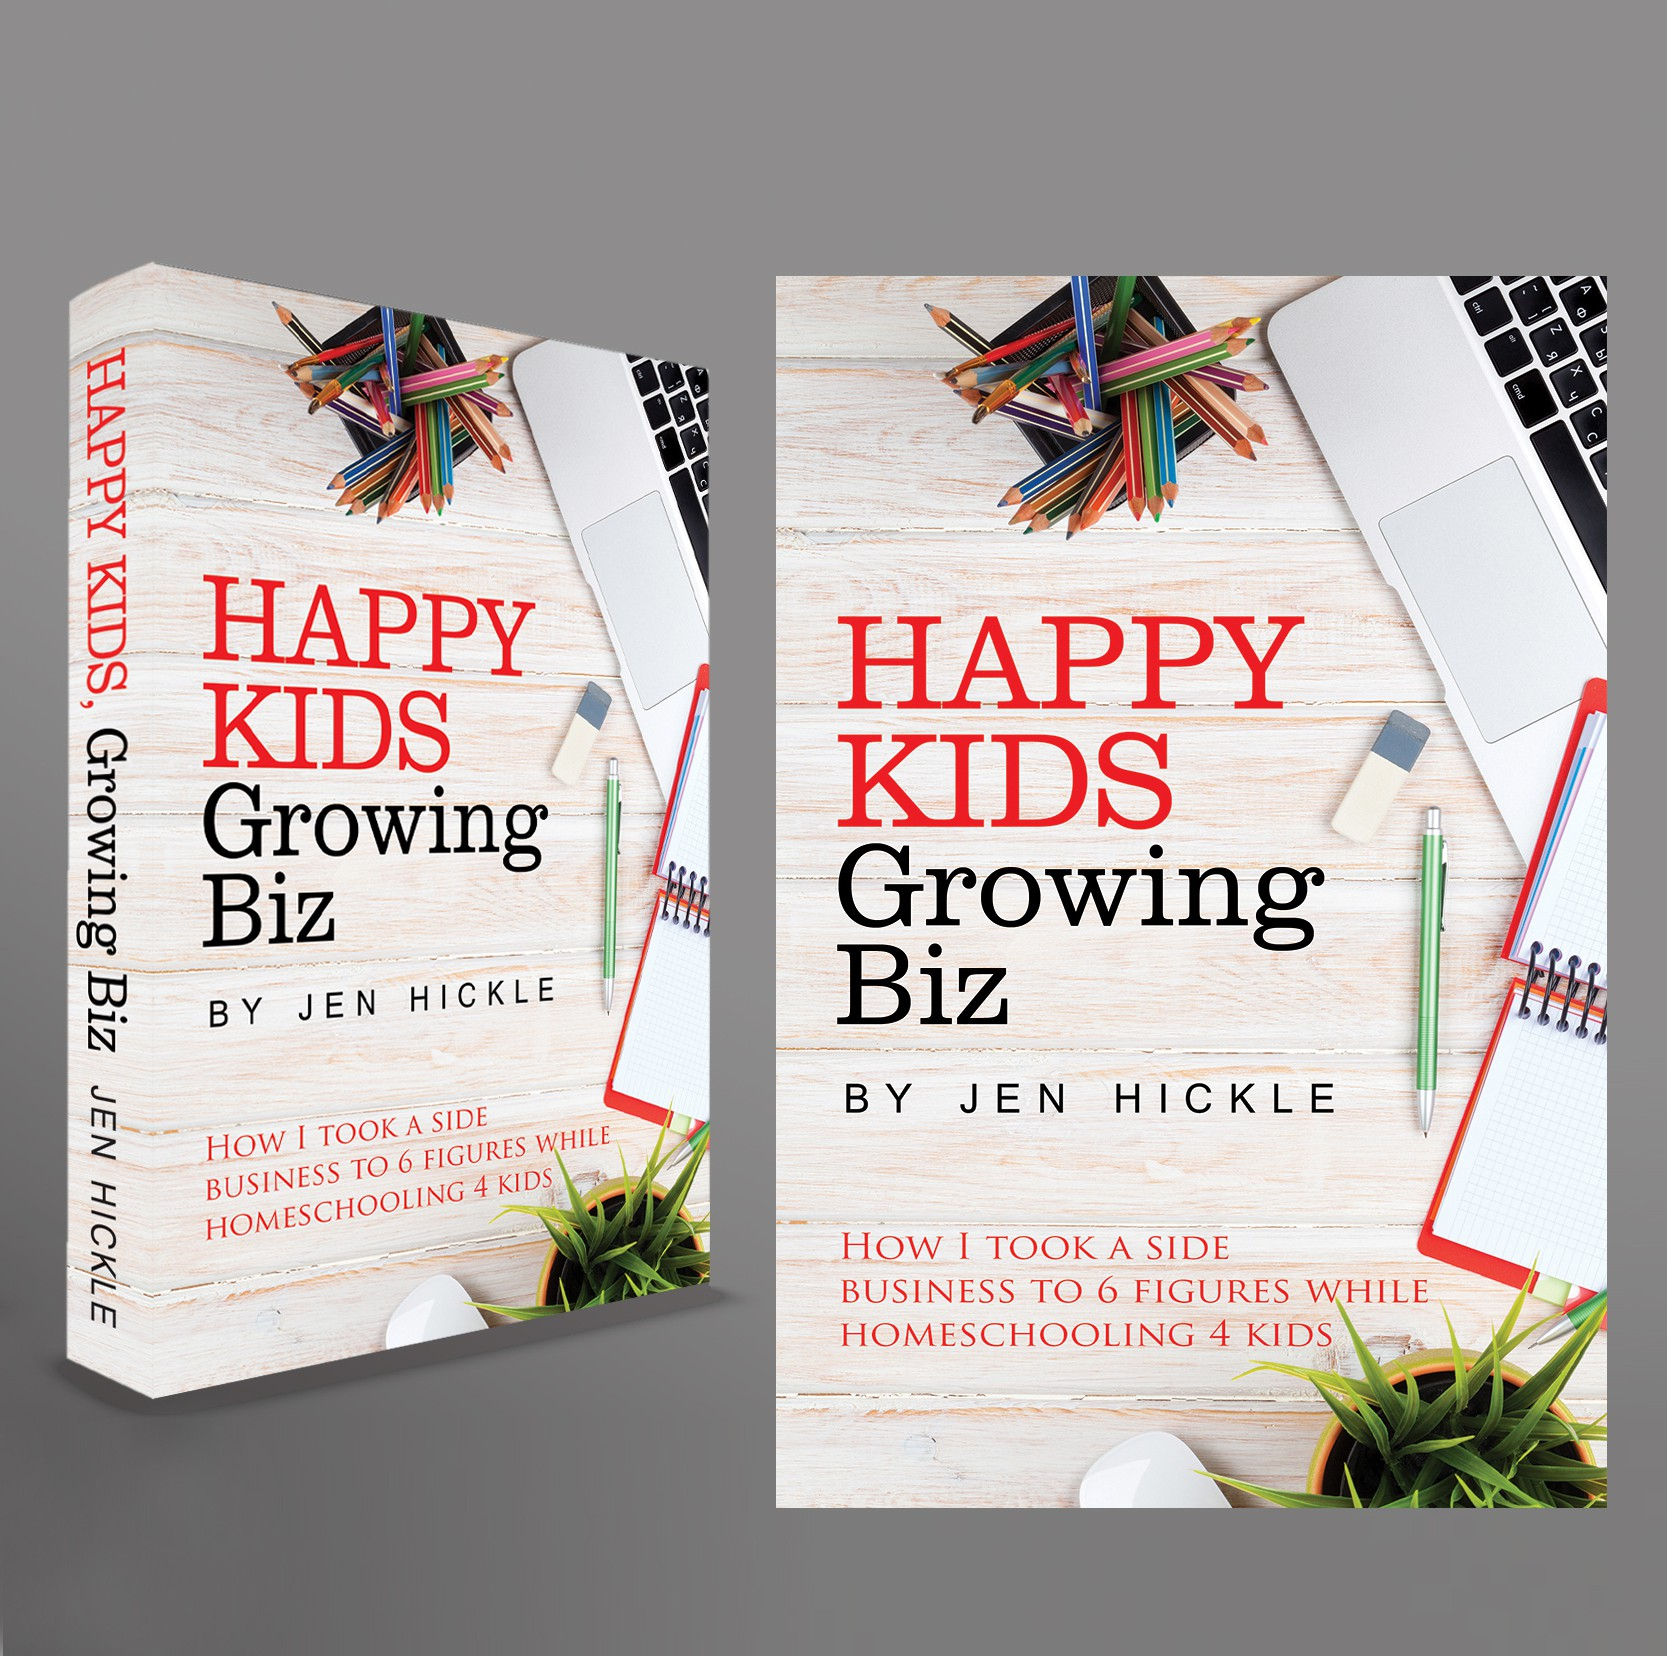 Create an inspiring cover for mom business owners!